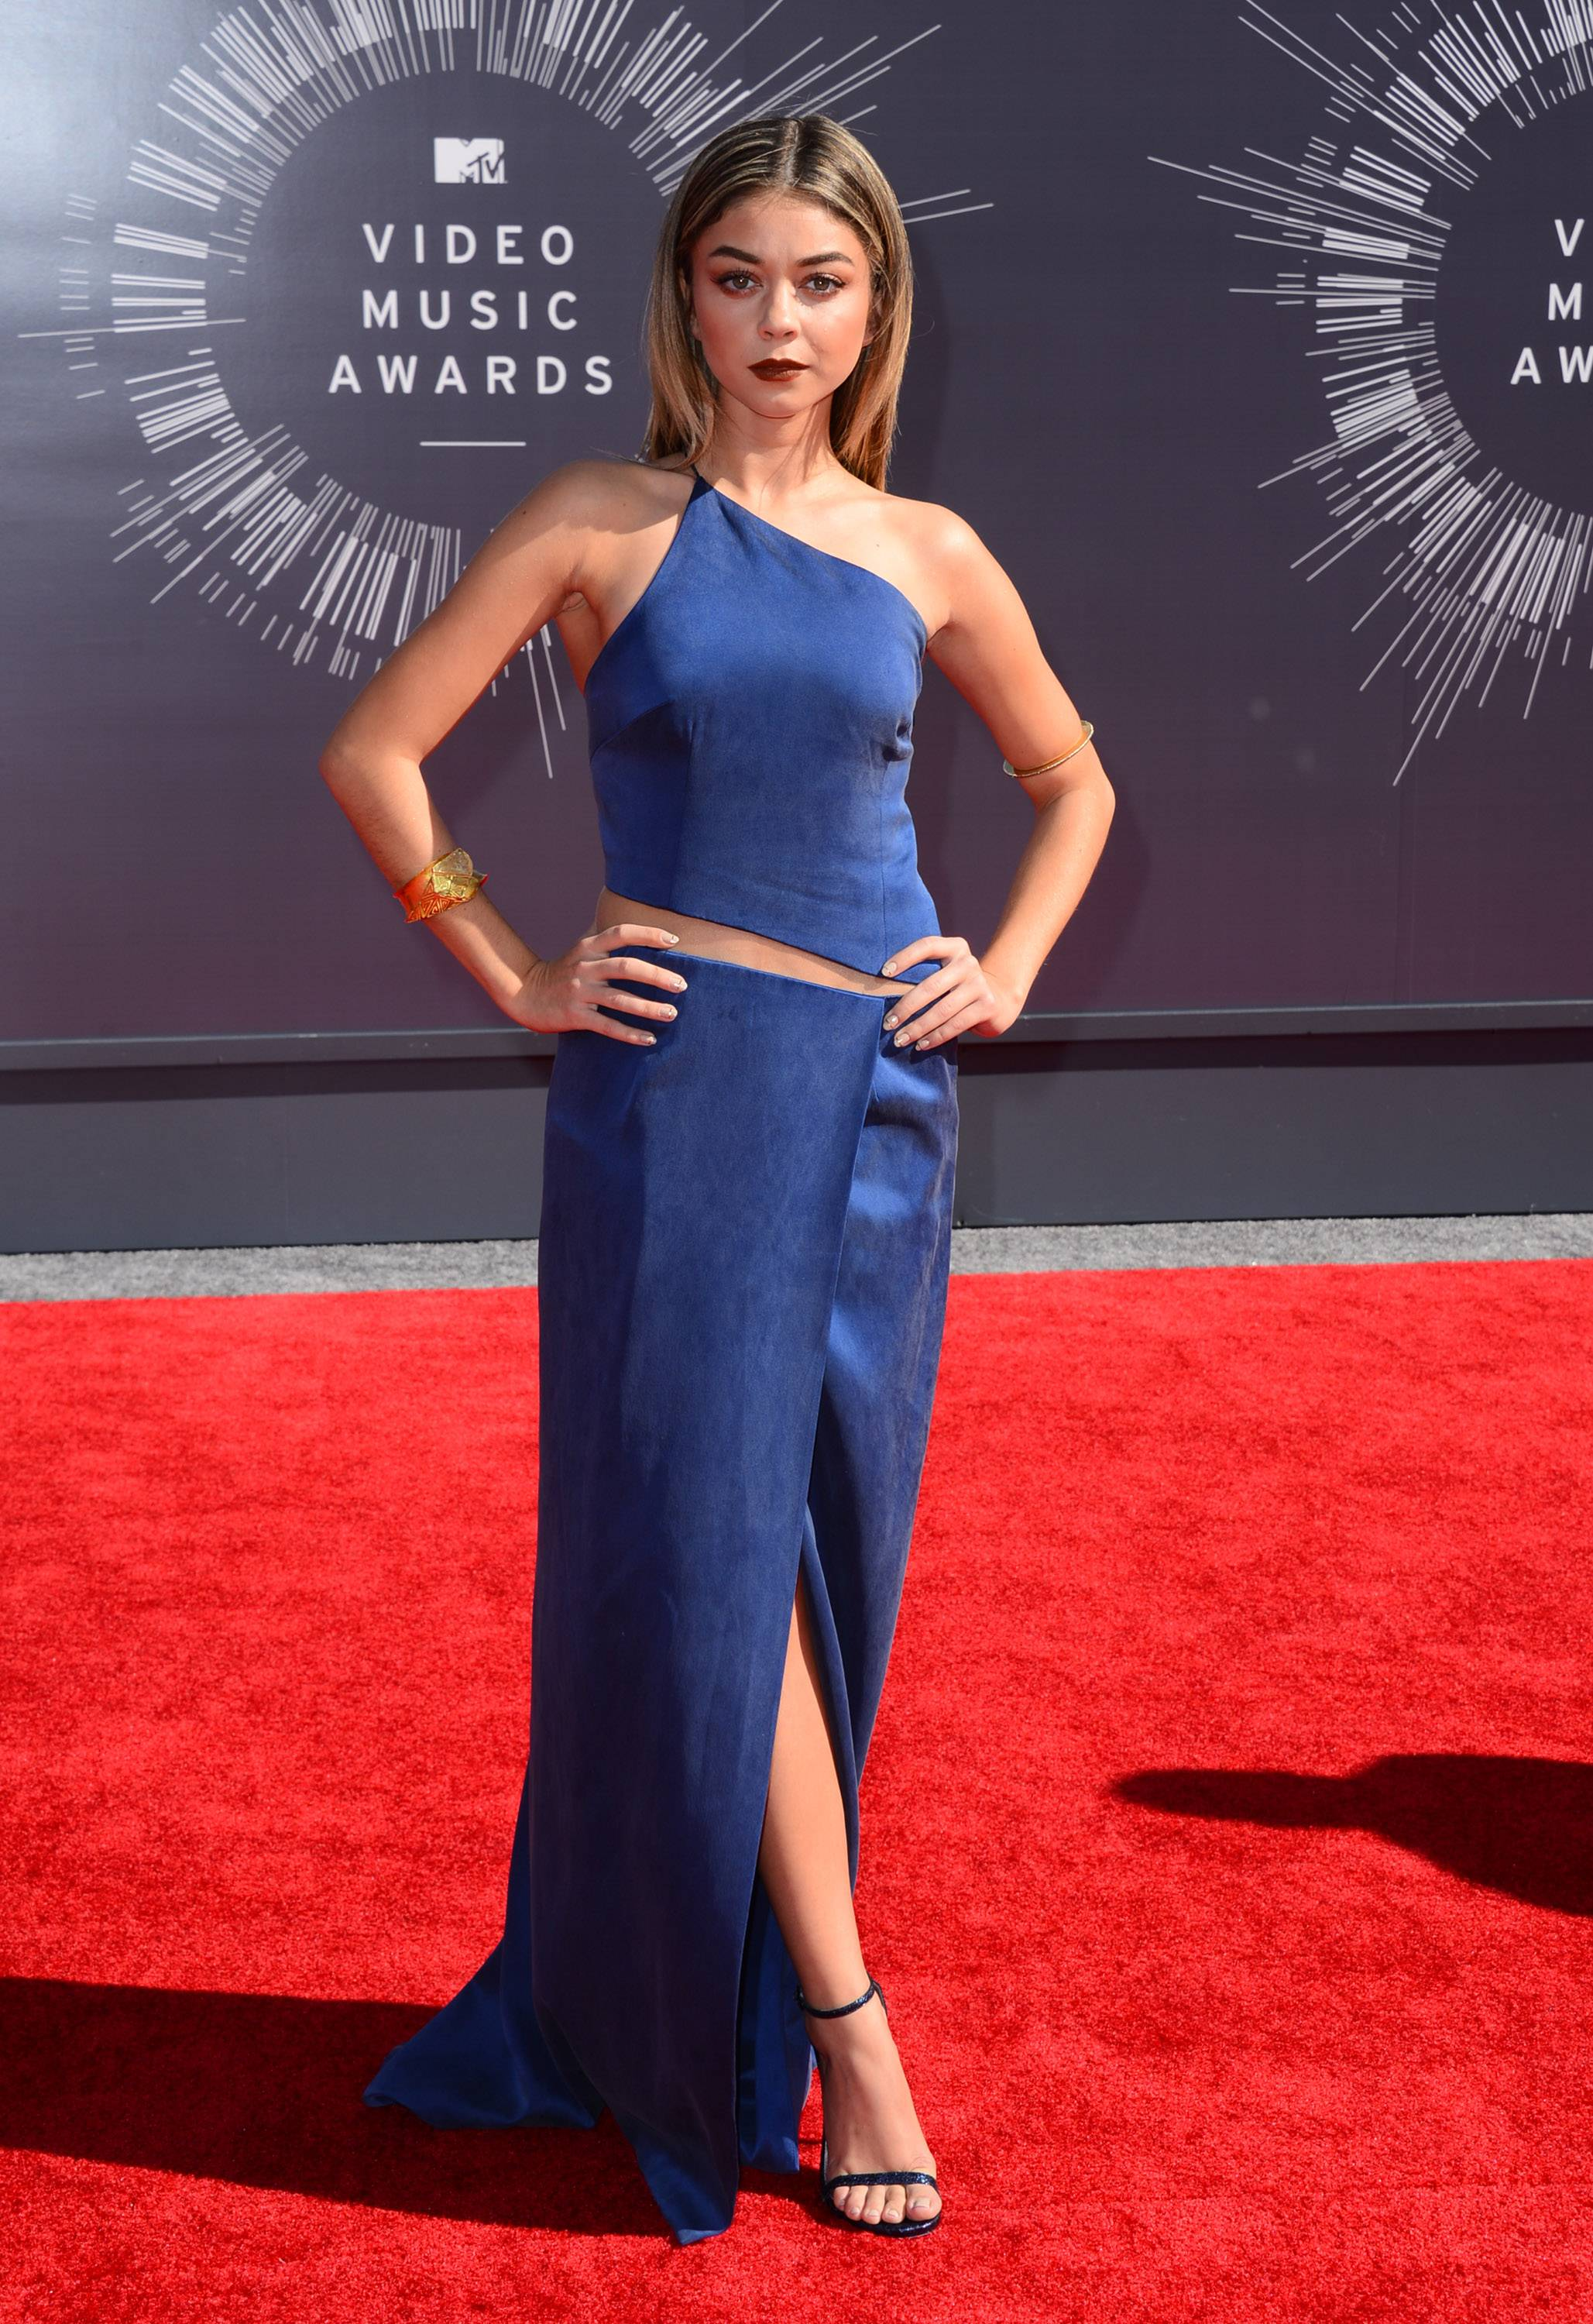 """Modern Family"" actress Sarah Hyland arrives at the MTV Video Music Awards at The Forum on Sunday in Inglewood, Calif."